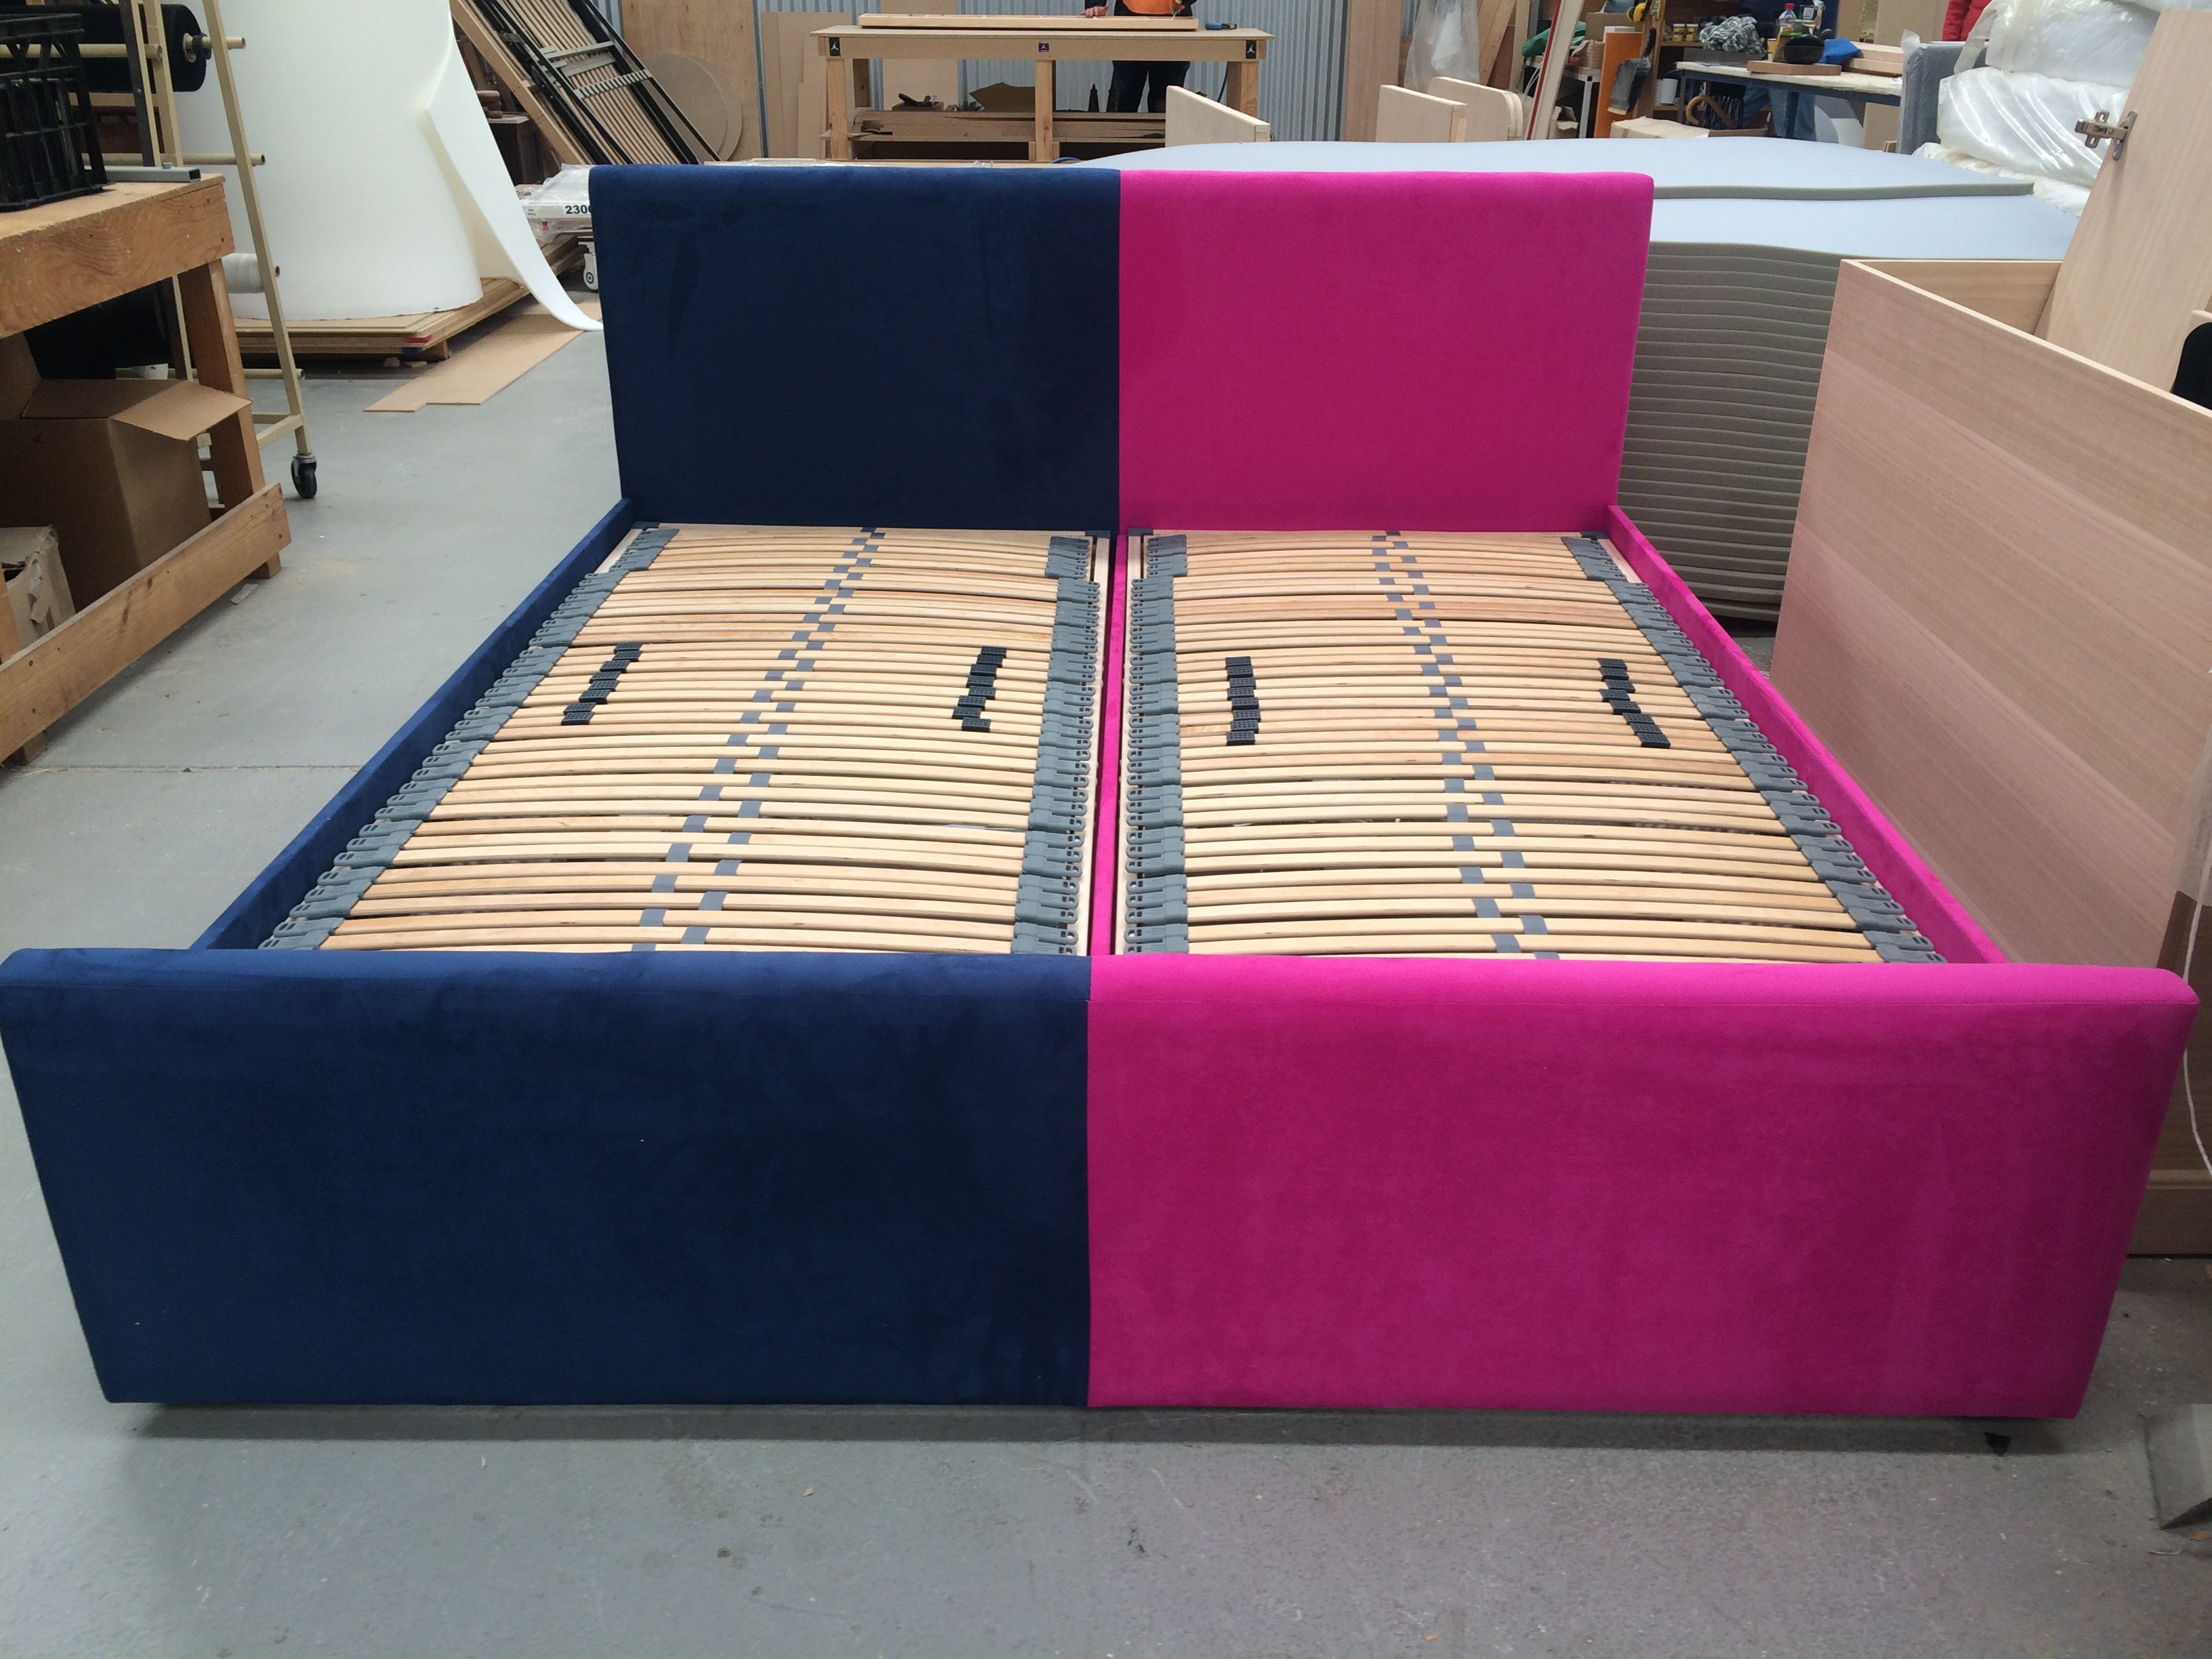 Electric Adjustable Beds Specialist, Adjustable Electric Sydney_His_Hers Sydney Long Single Bed Designs